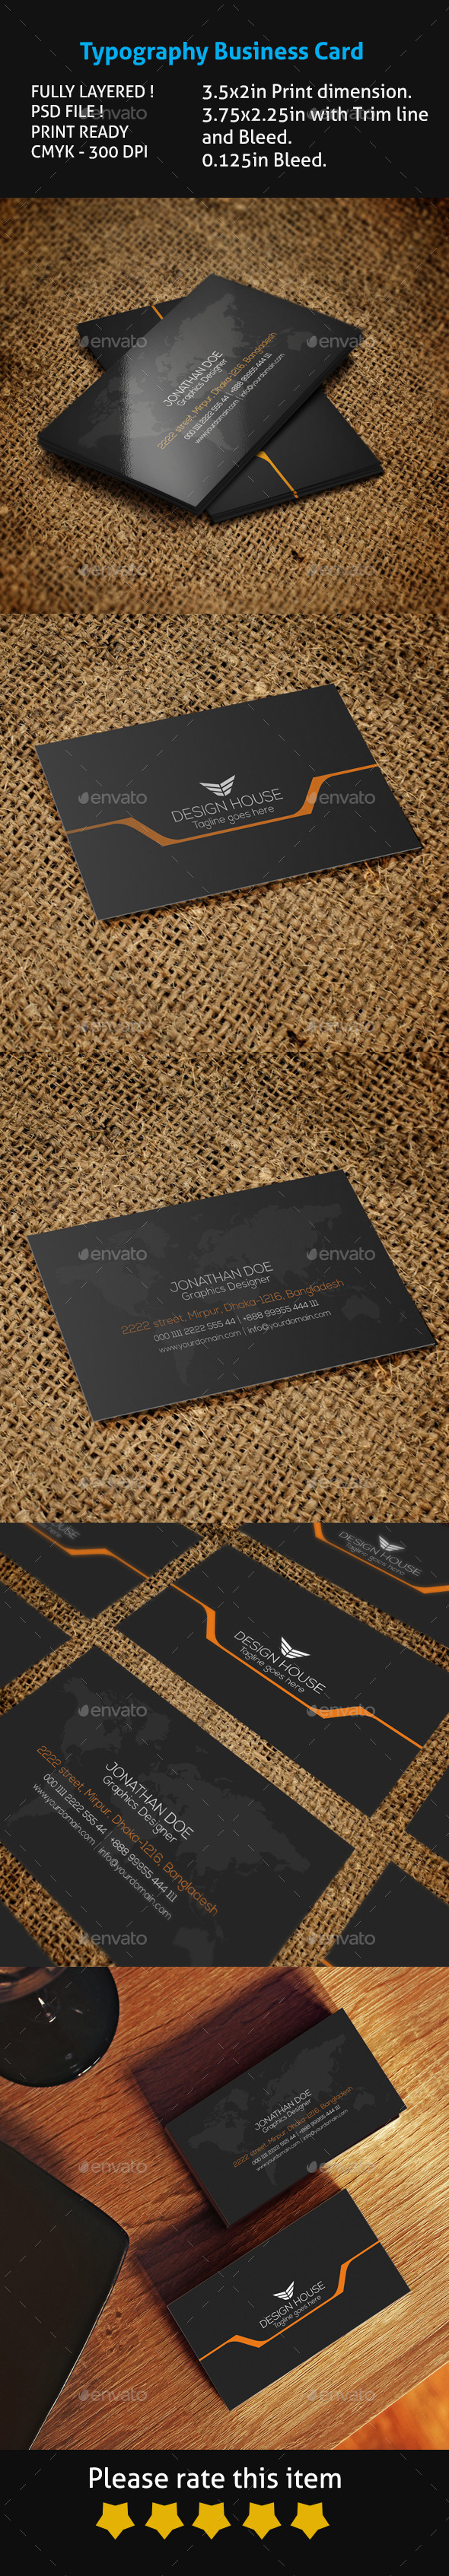 GraphicRiver Typography Business Card 10620434